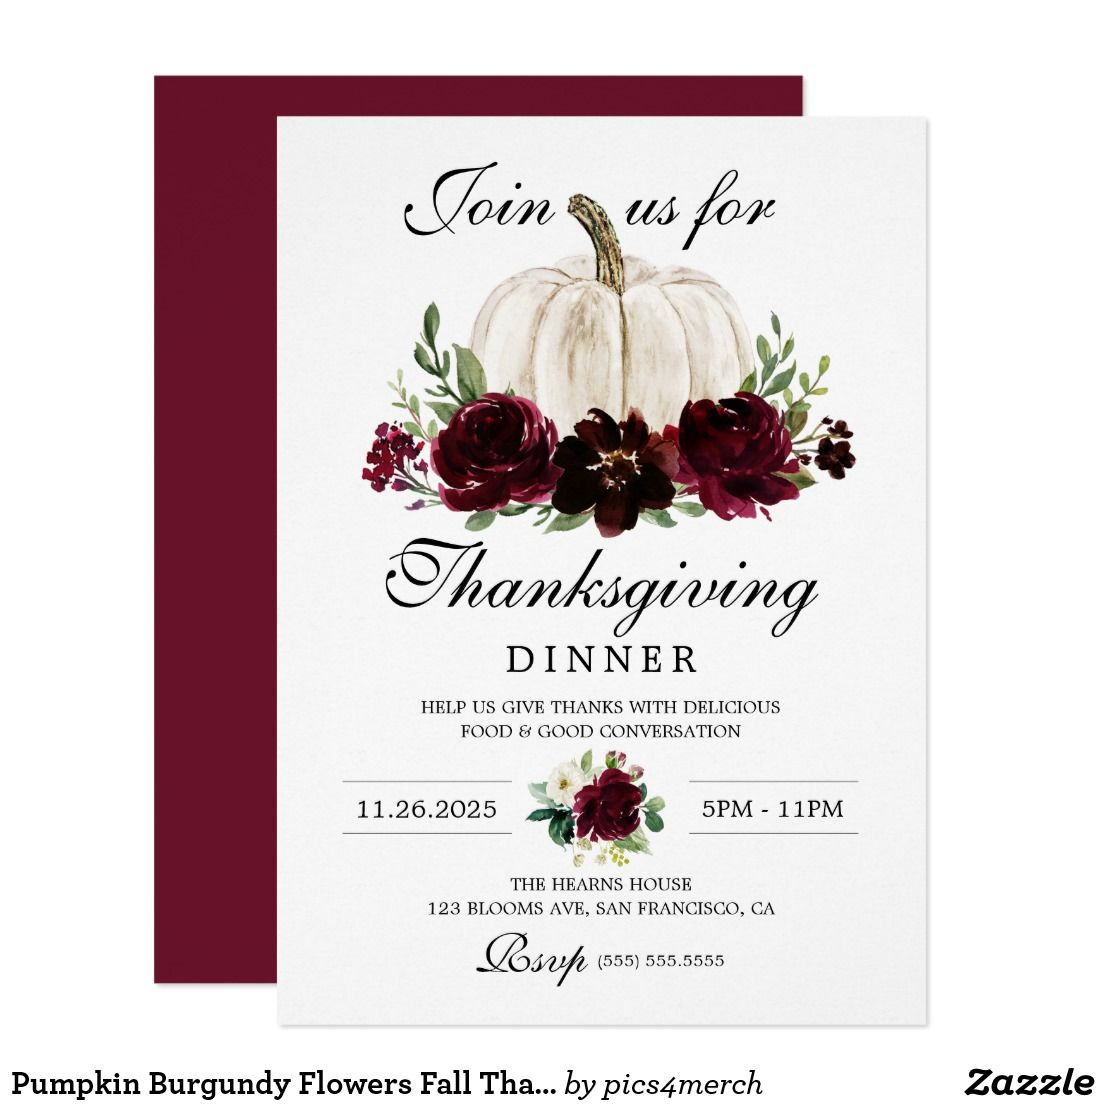 Pumpkin Burgundy Flowers Fall Thanksgiving Dinner Invitation Zazzle Com Friendsgiving Potluck Invitations Potluck Invitation Thanksgiving Dinner Invitation